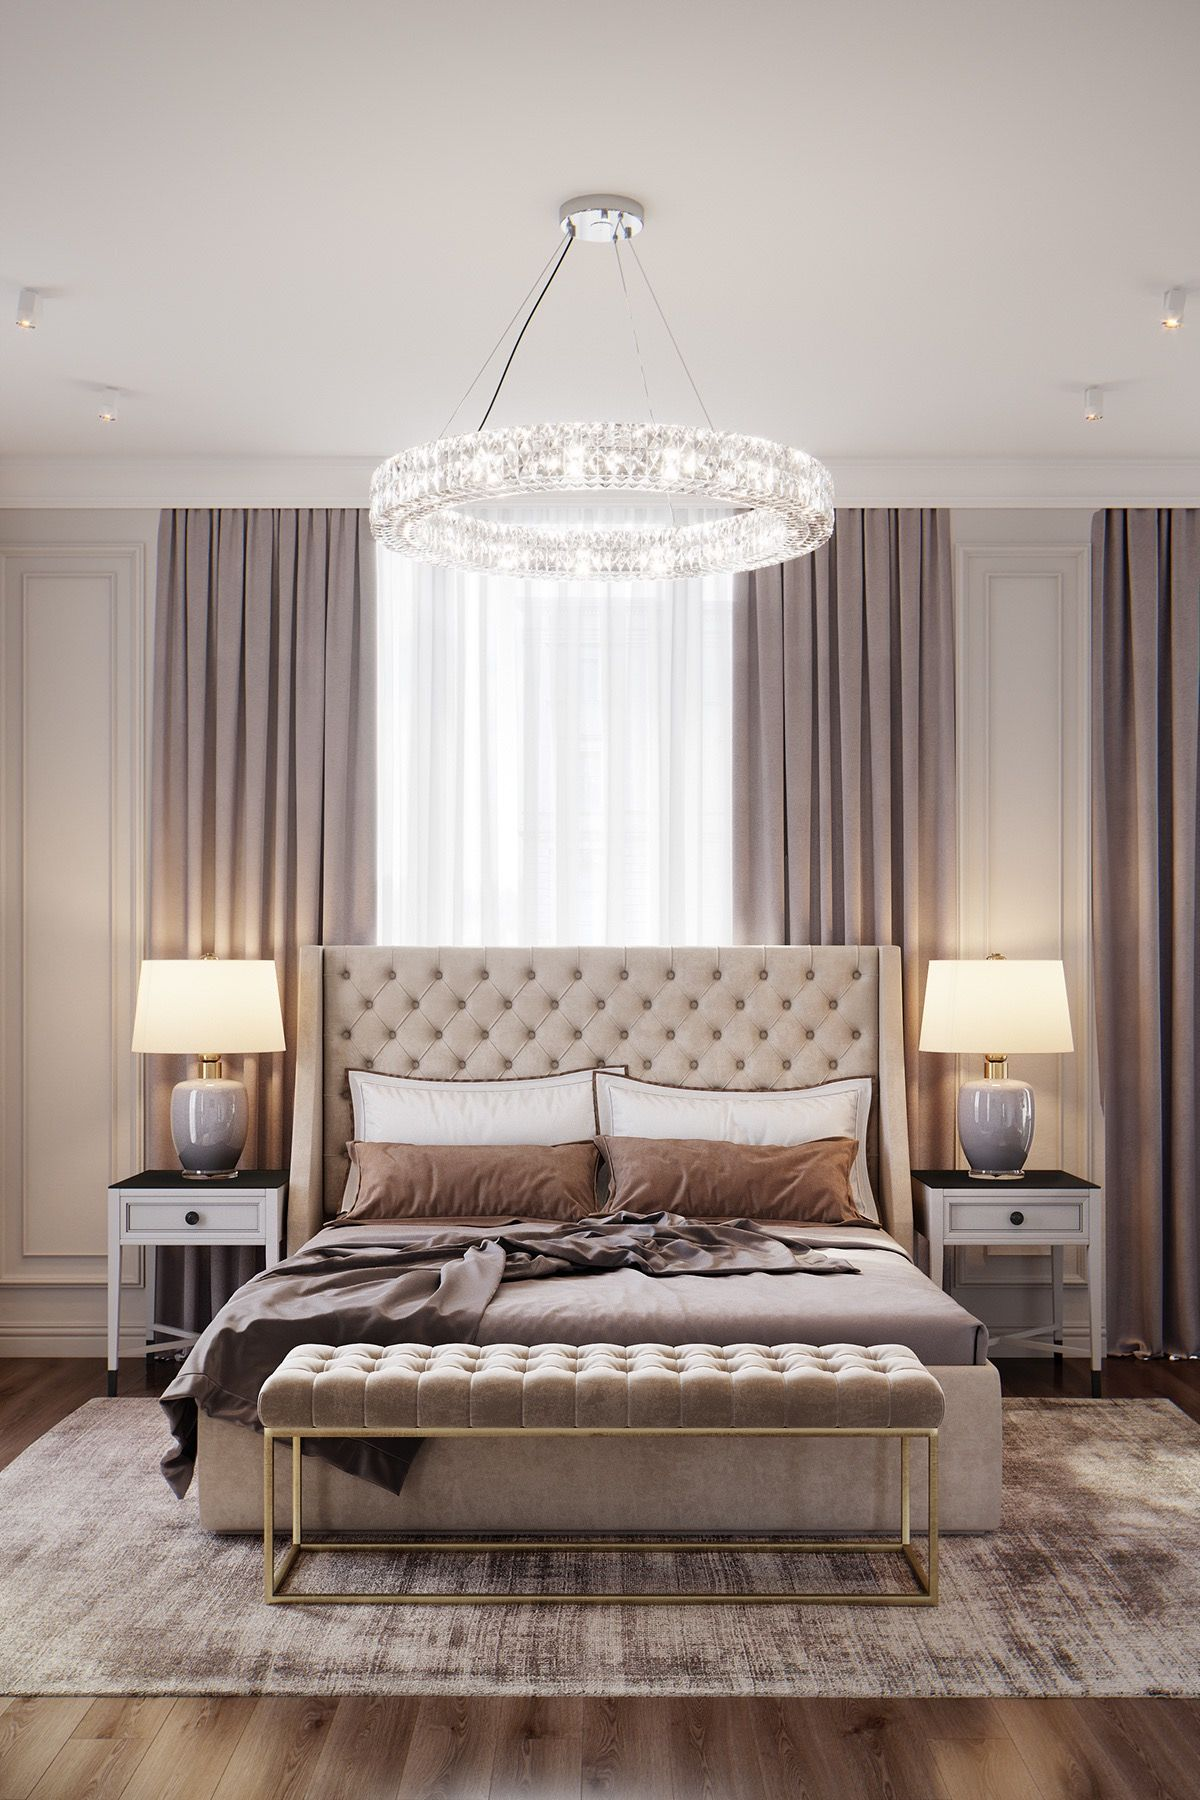 40 Transitional Bedrooms That Beautifully Bridge Modern And Traditional Cozy Bedroom Design Transitional Living Room Design Bedroom Inspiration Cozy,French Decorating Ideas For The Home